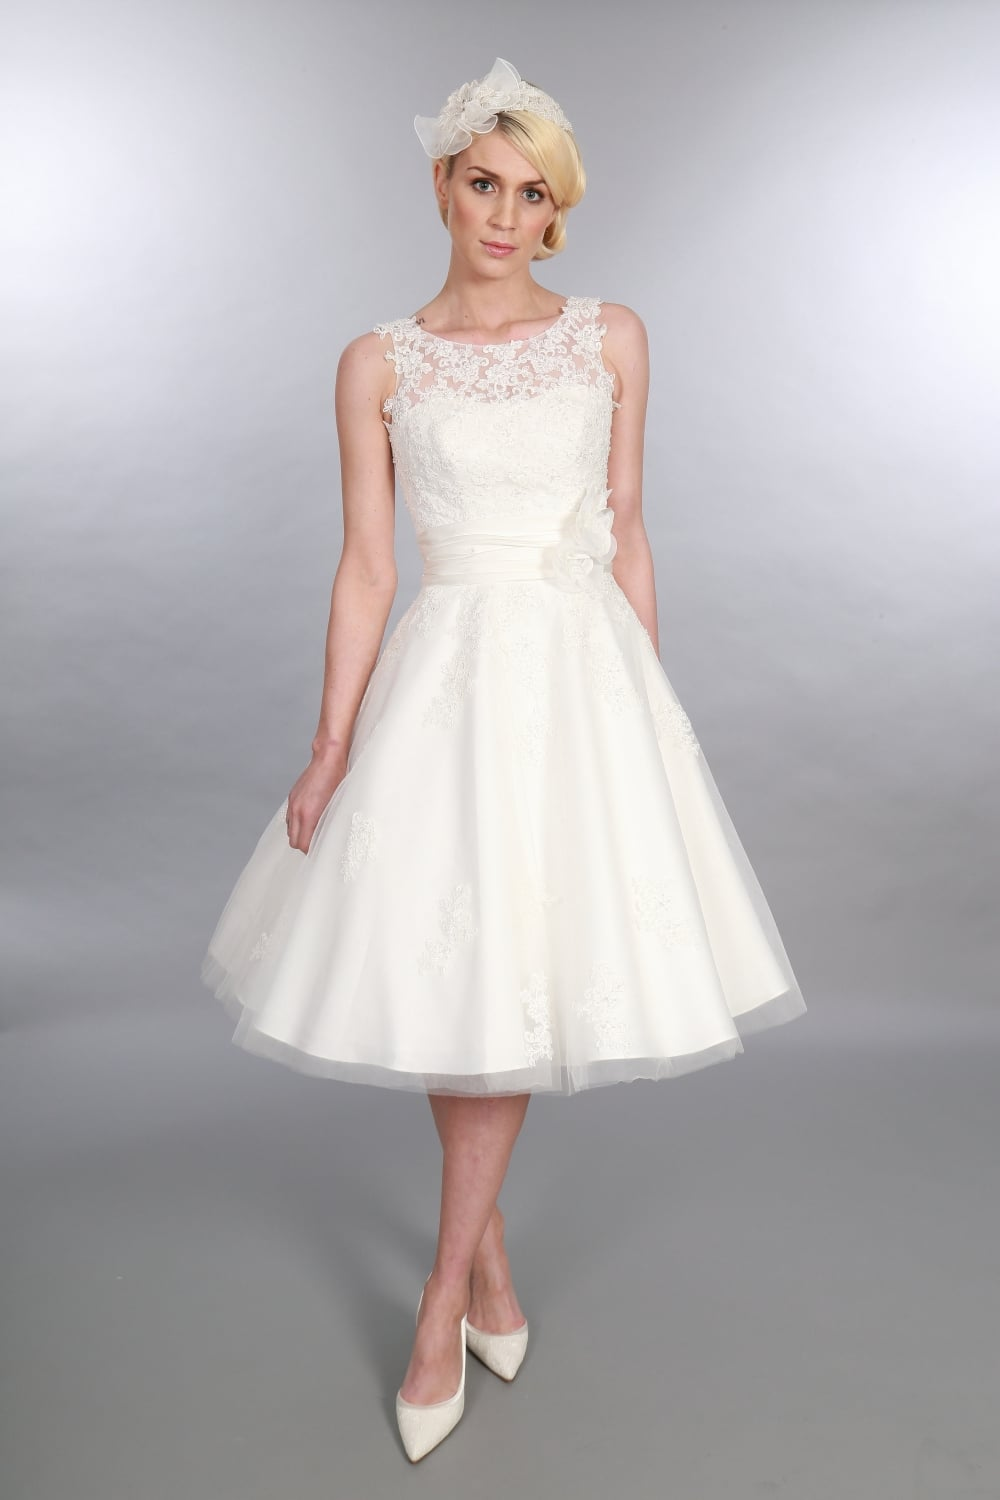 Timeless Chic Anara Tea Length Lace Tulle Short Vintage Wedding Dress